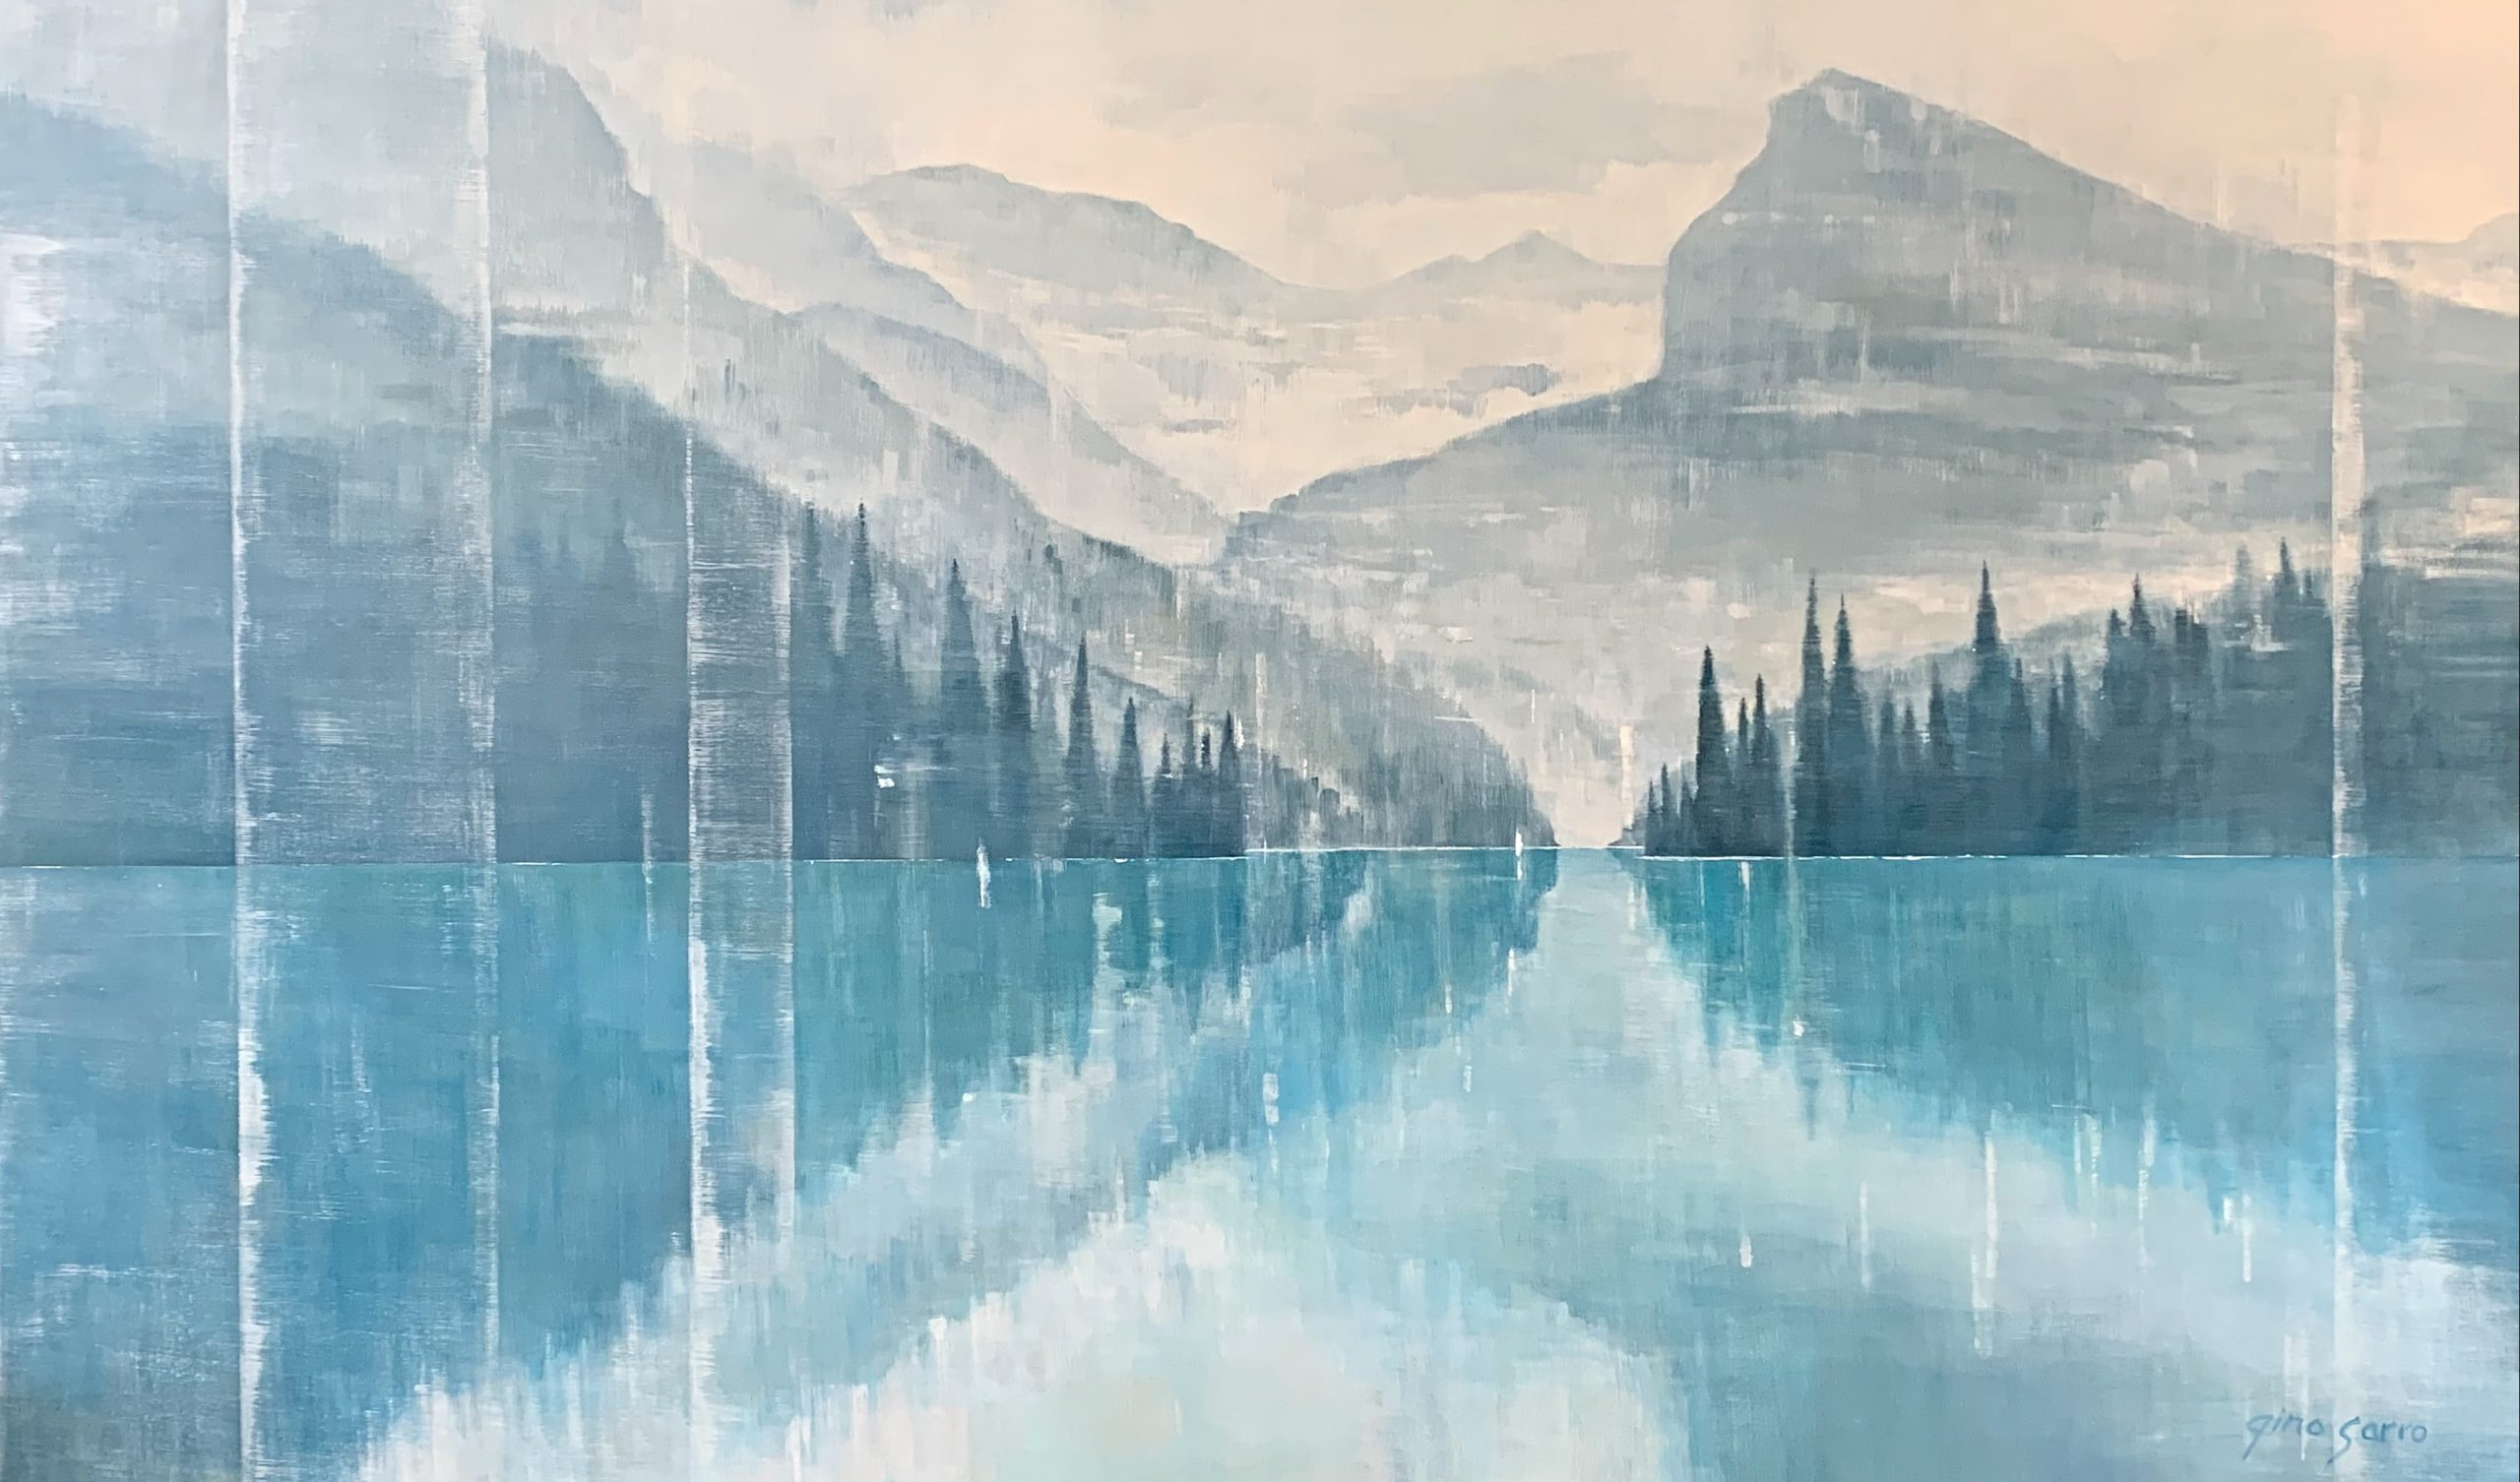 Quiet Reflection, acrylic landscape painting by Gina Sarro | Effusion Art Gallery + Cast Glass Studio, Invermere BC